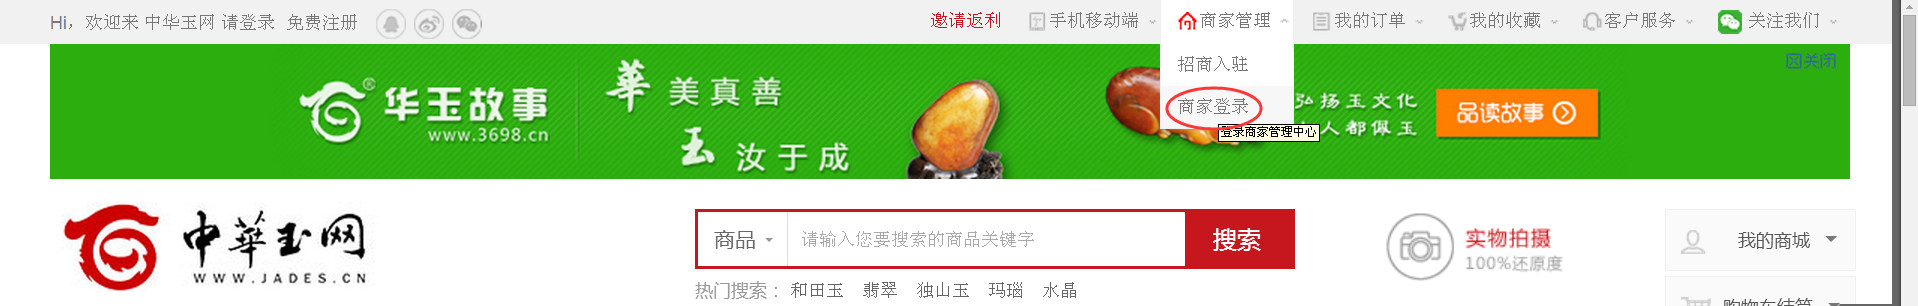 http://www.jades.cn/data/upload/shop/article/05219968126794138.png